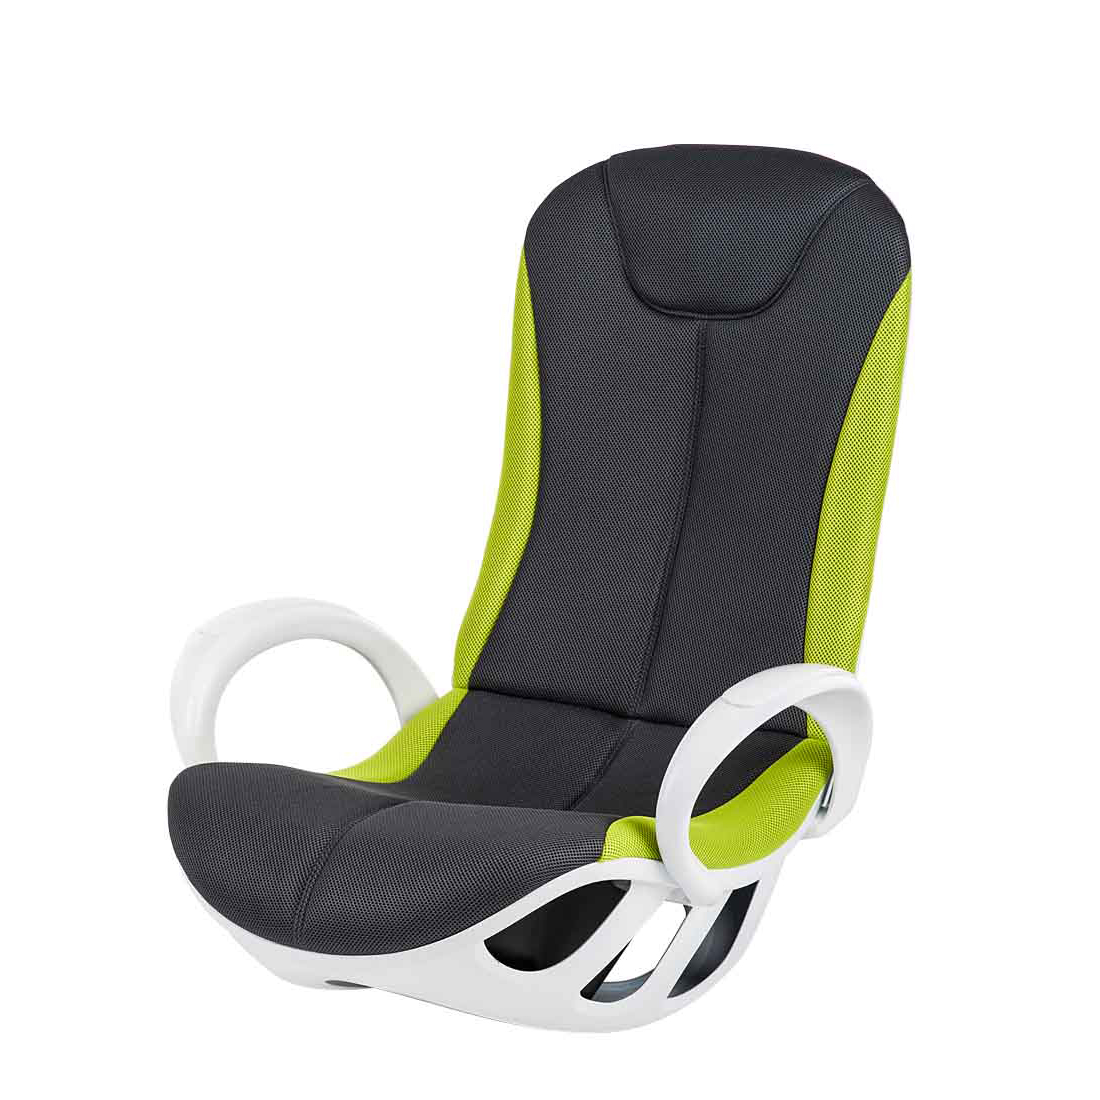 Relax Sessel Grün Multimediasessel Grau Grün Gaming Chair Relax Soundsessel